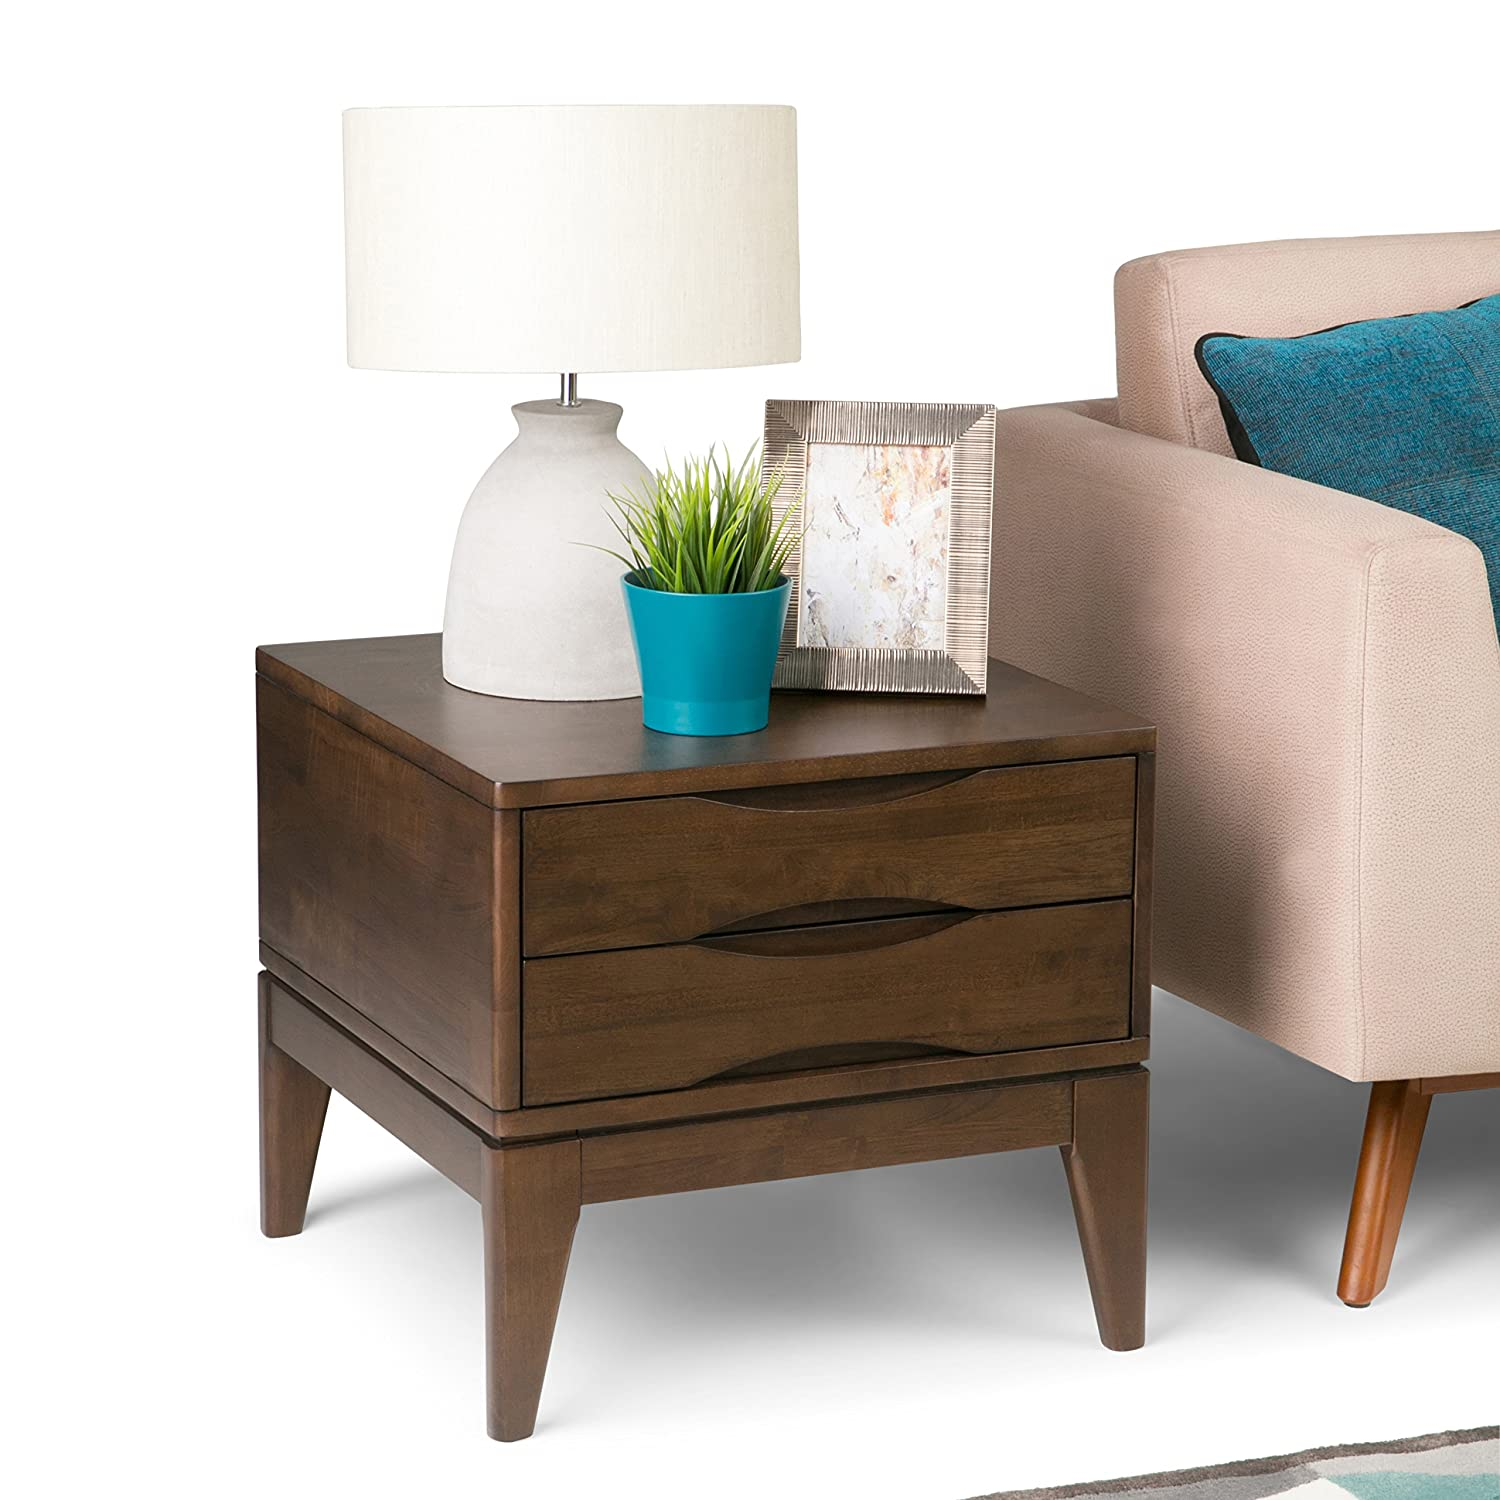 Simpli Home 3AXCHRP-02 Harper Solid Hardwood 22 inch wide Square Mid Century Modern End Side Table in Walnut Brown